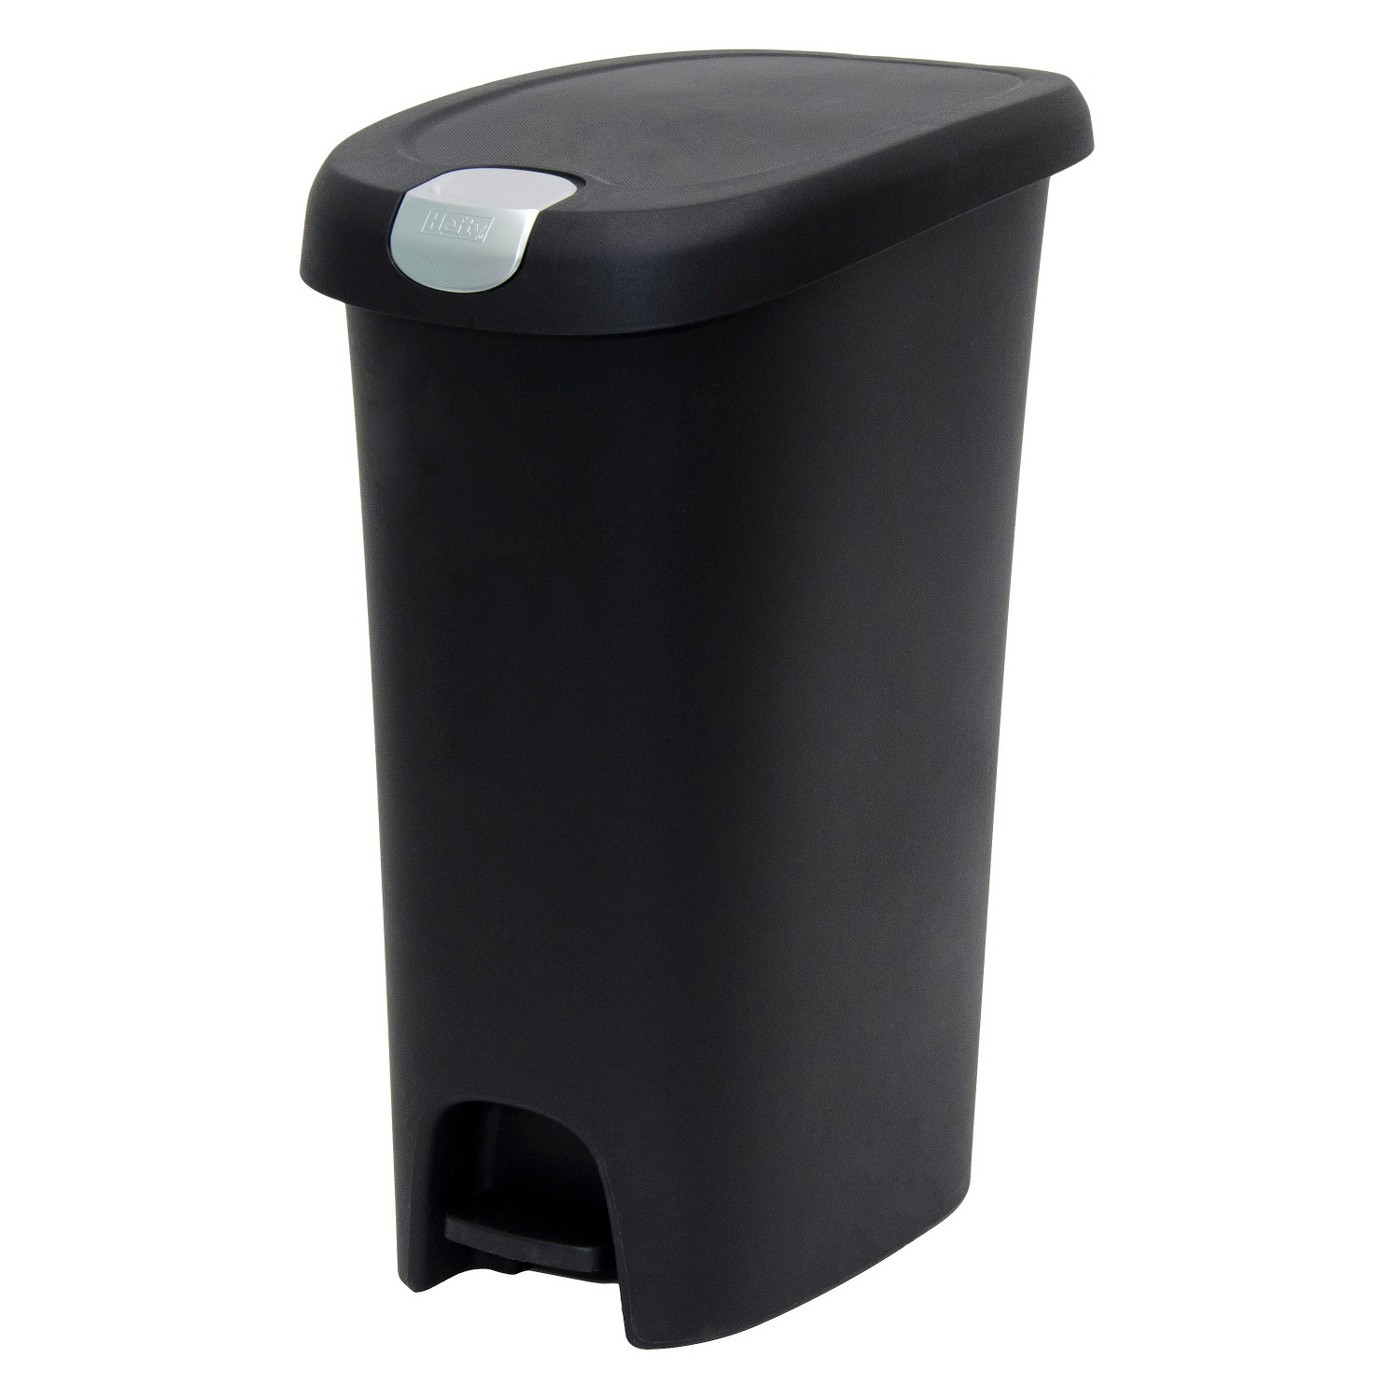 Hefty 12.3 gallon garbage can